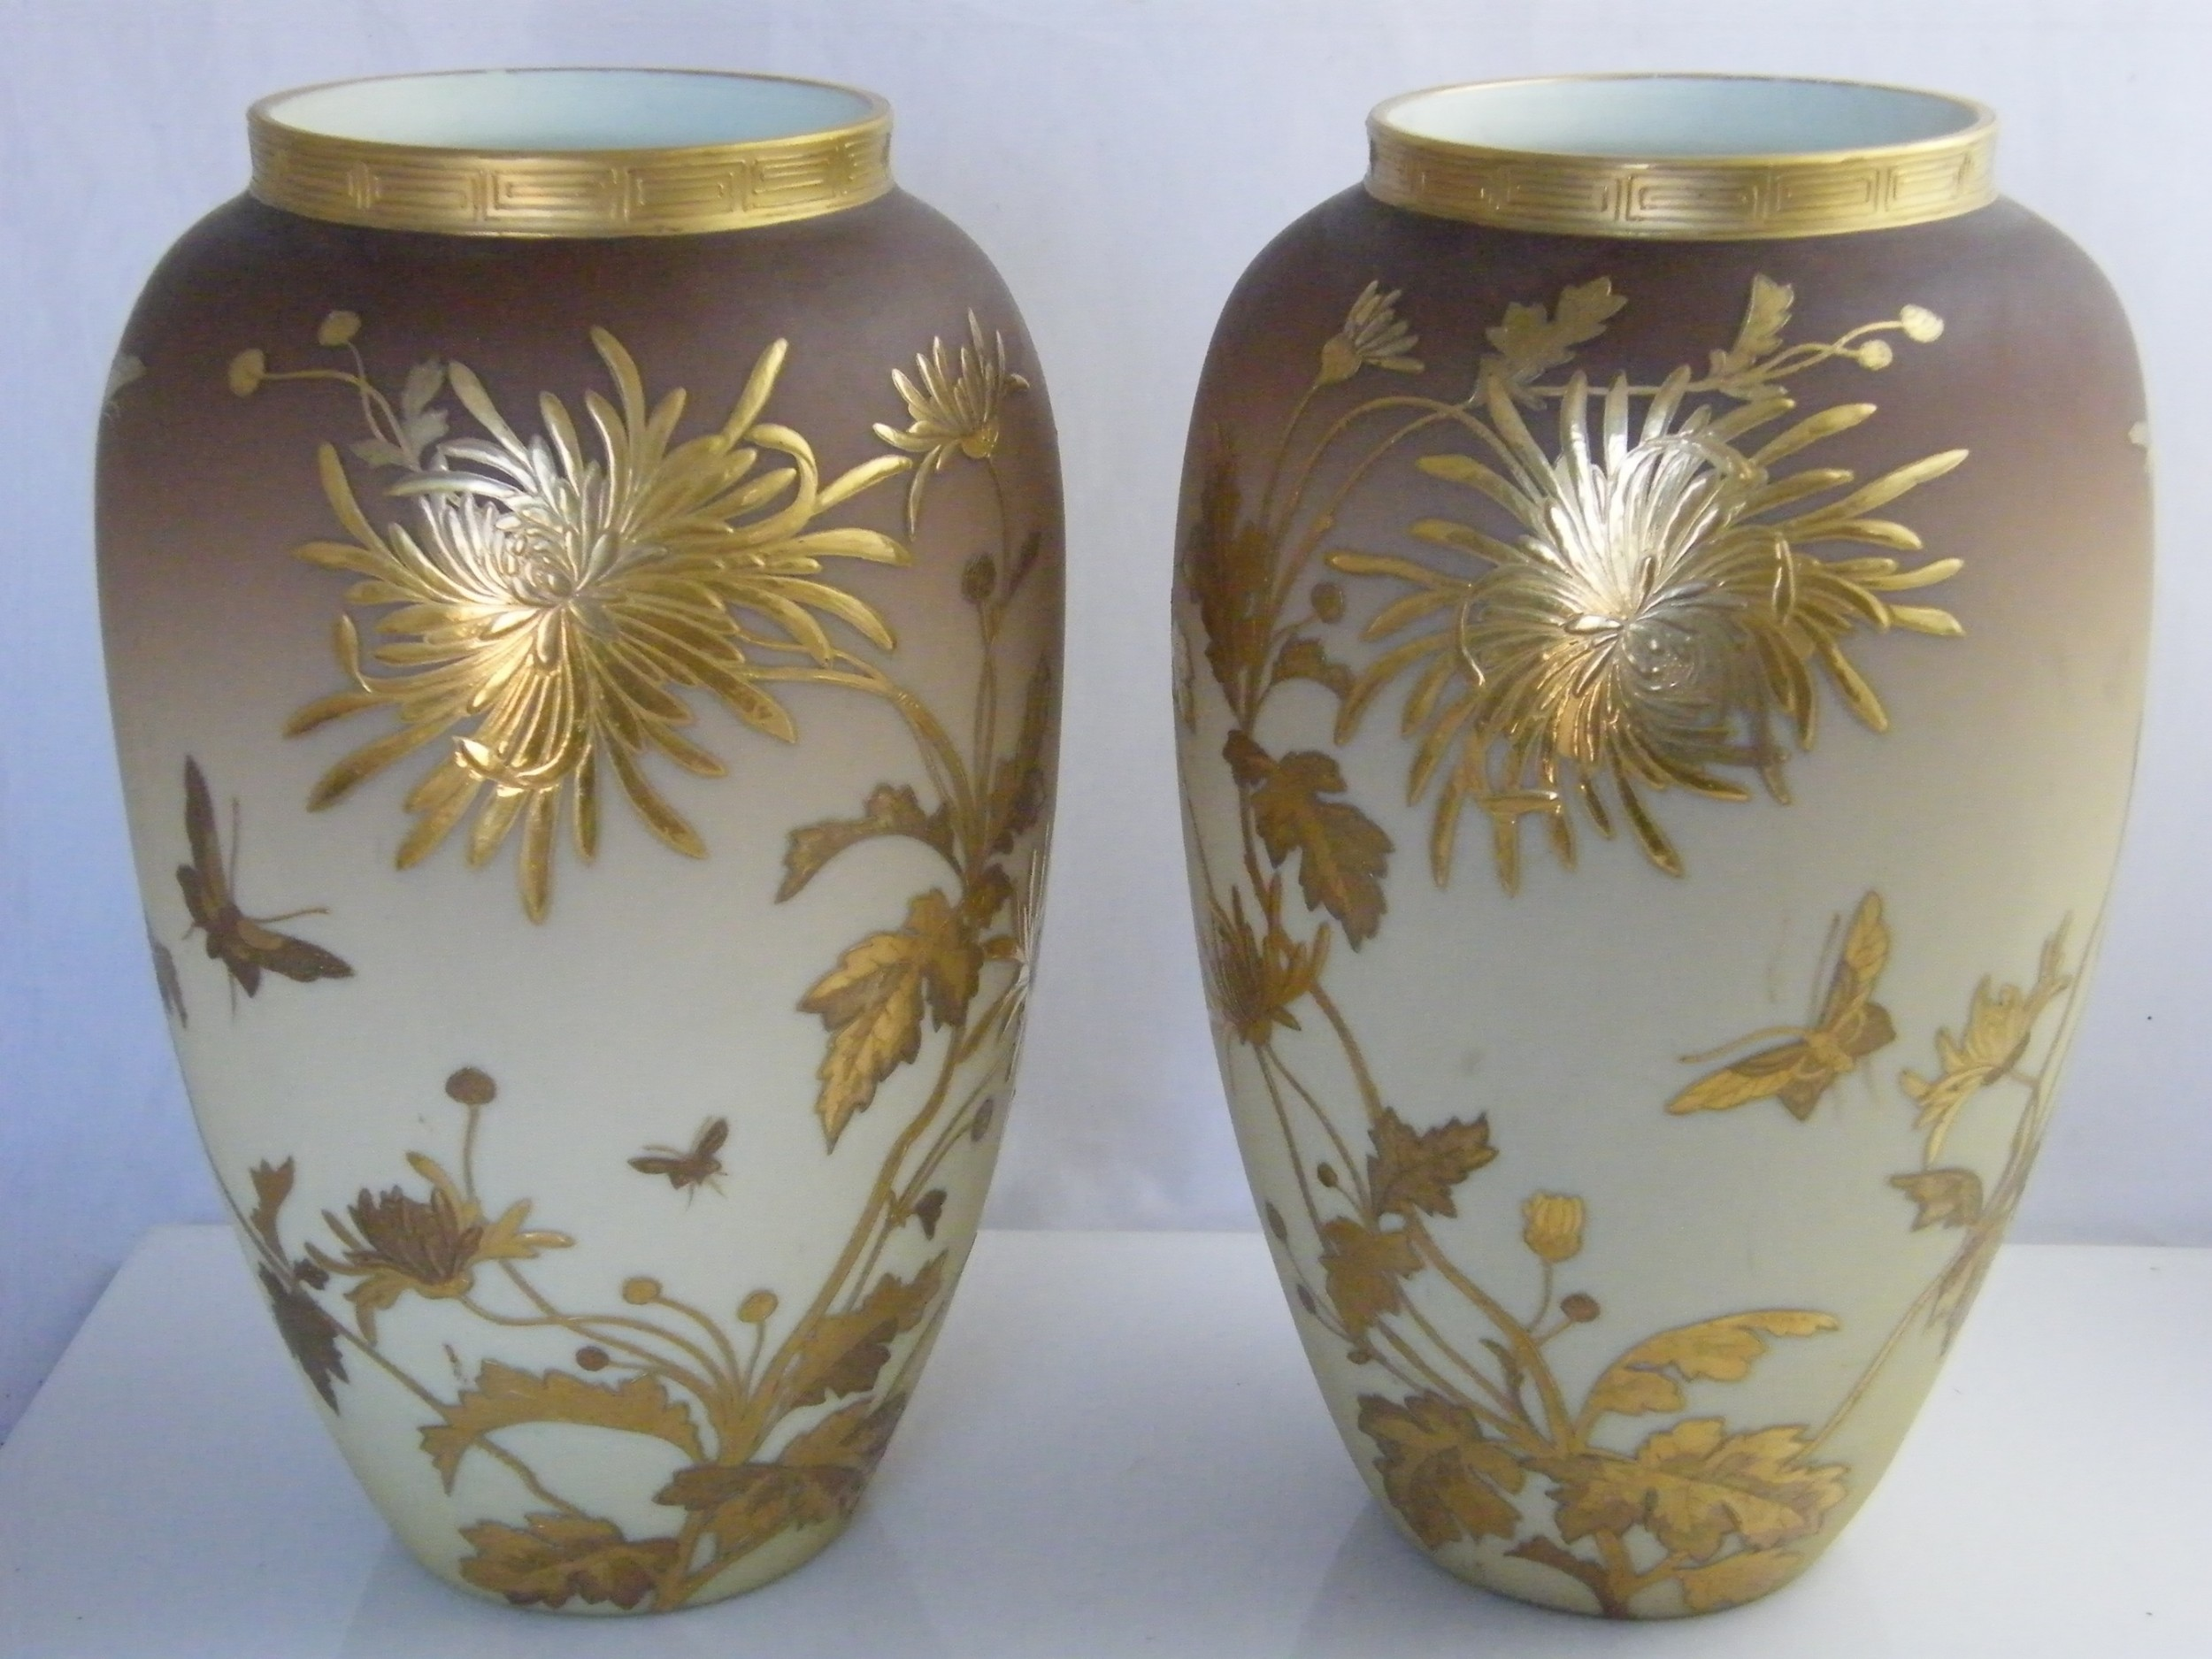 A Very Large & Impressive Pr Of Thomas Webb & Sons Satin Peachblow Gl Cylinder Vases Cheap Uk on cheap rectangular vases, cheap tall vases, cheap square vases, cheap flower vases, wholesale vases, cheap vintage vases, cheap trumpet vases, cheap backdrops, cheap acrylic vases, cheap black vases, cheap ceramic vases, cheap bridal bouquets, cheap hurricane vases, cheap block vases, cheap flower arrangements, cheap large vases, cheap wine glasses, cheap bud vases, cheap christmas, cheap votive holders,